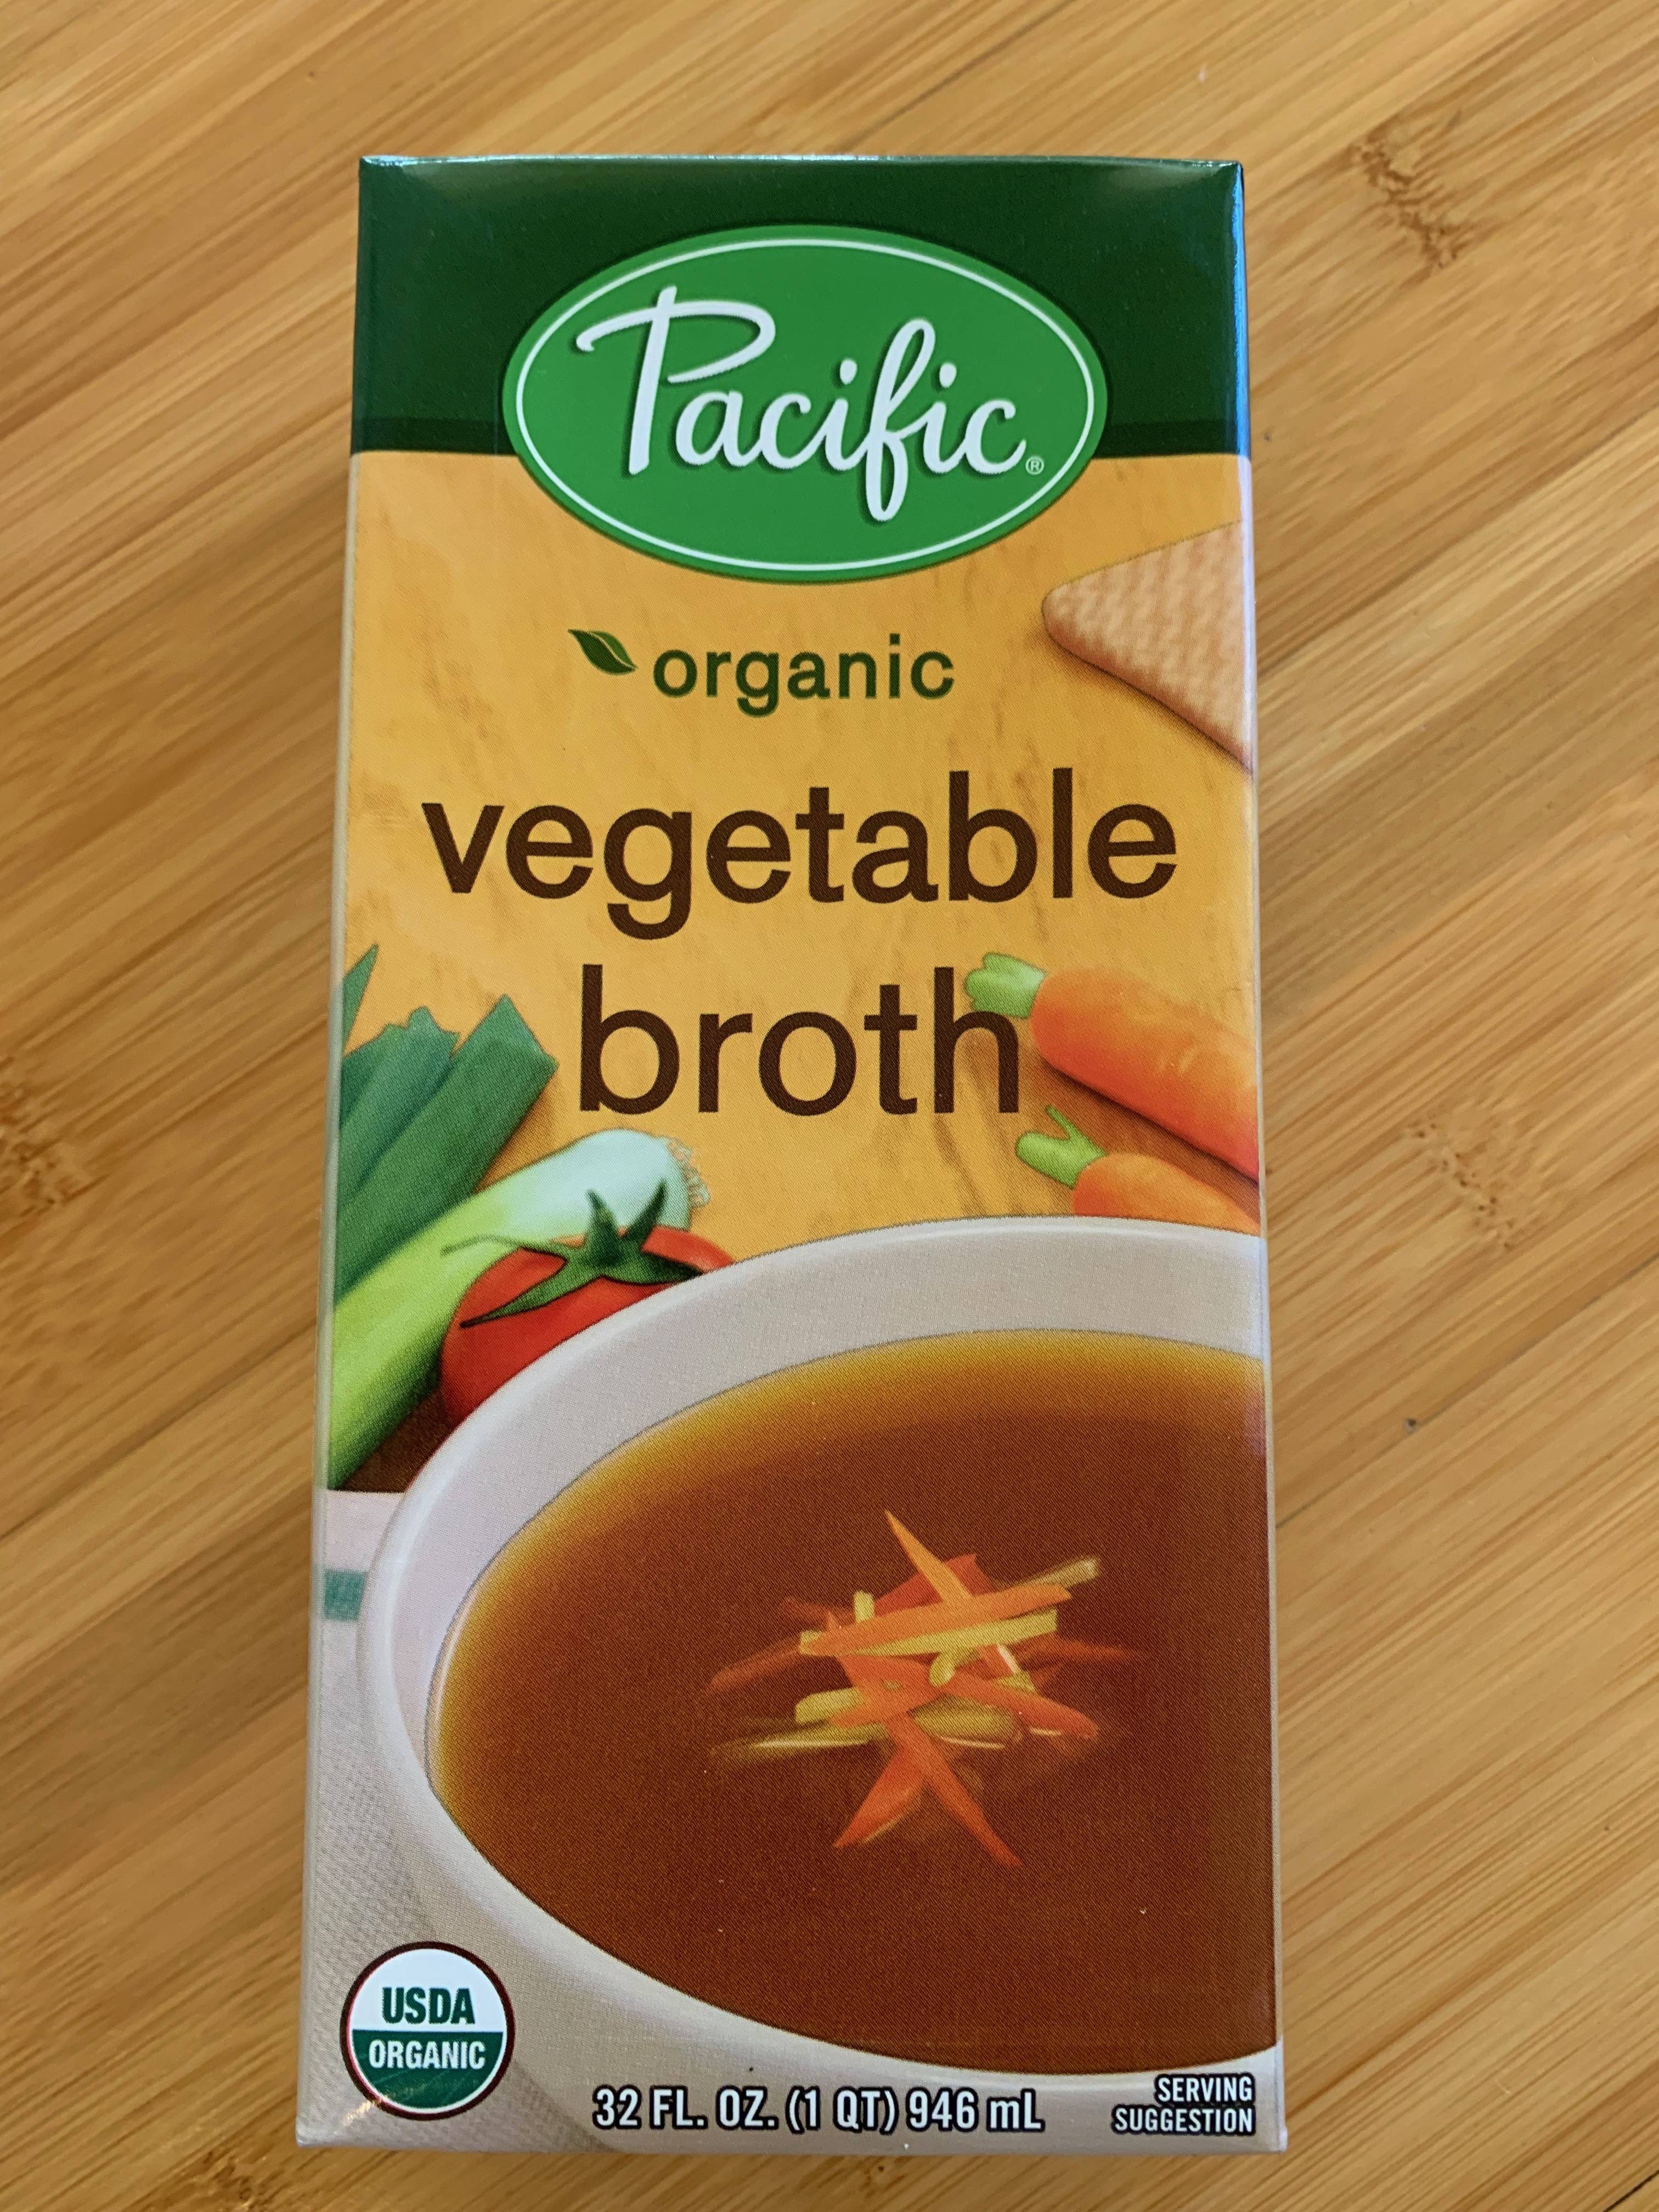 Pacific Organic Vegetable Broth